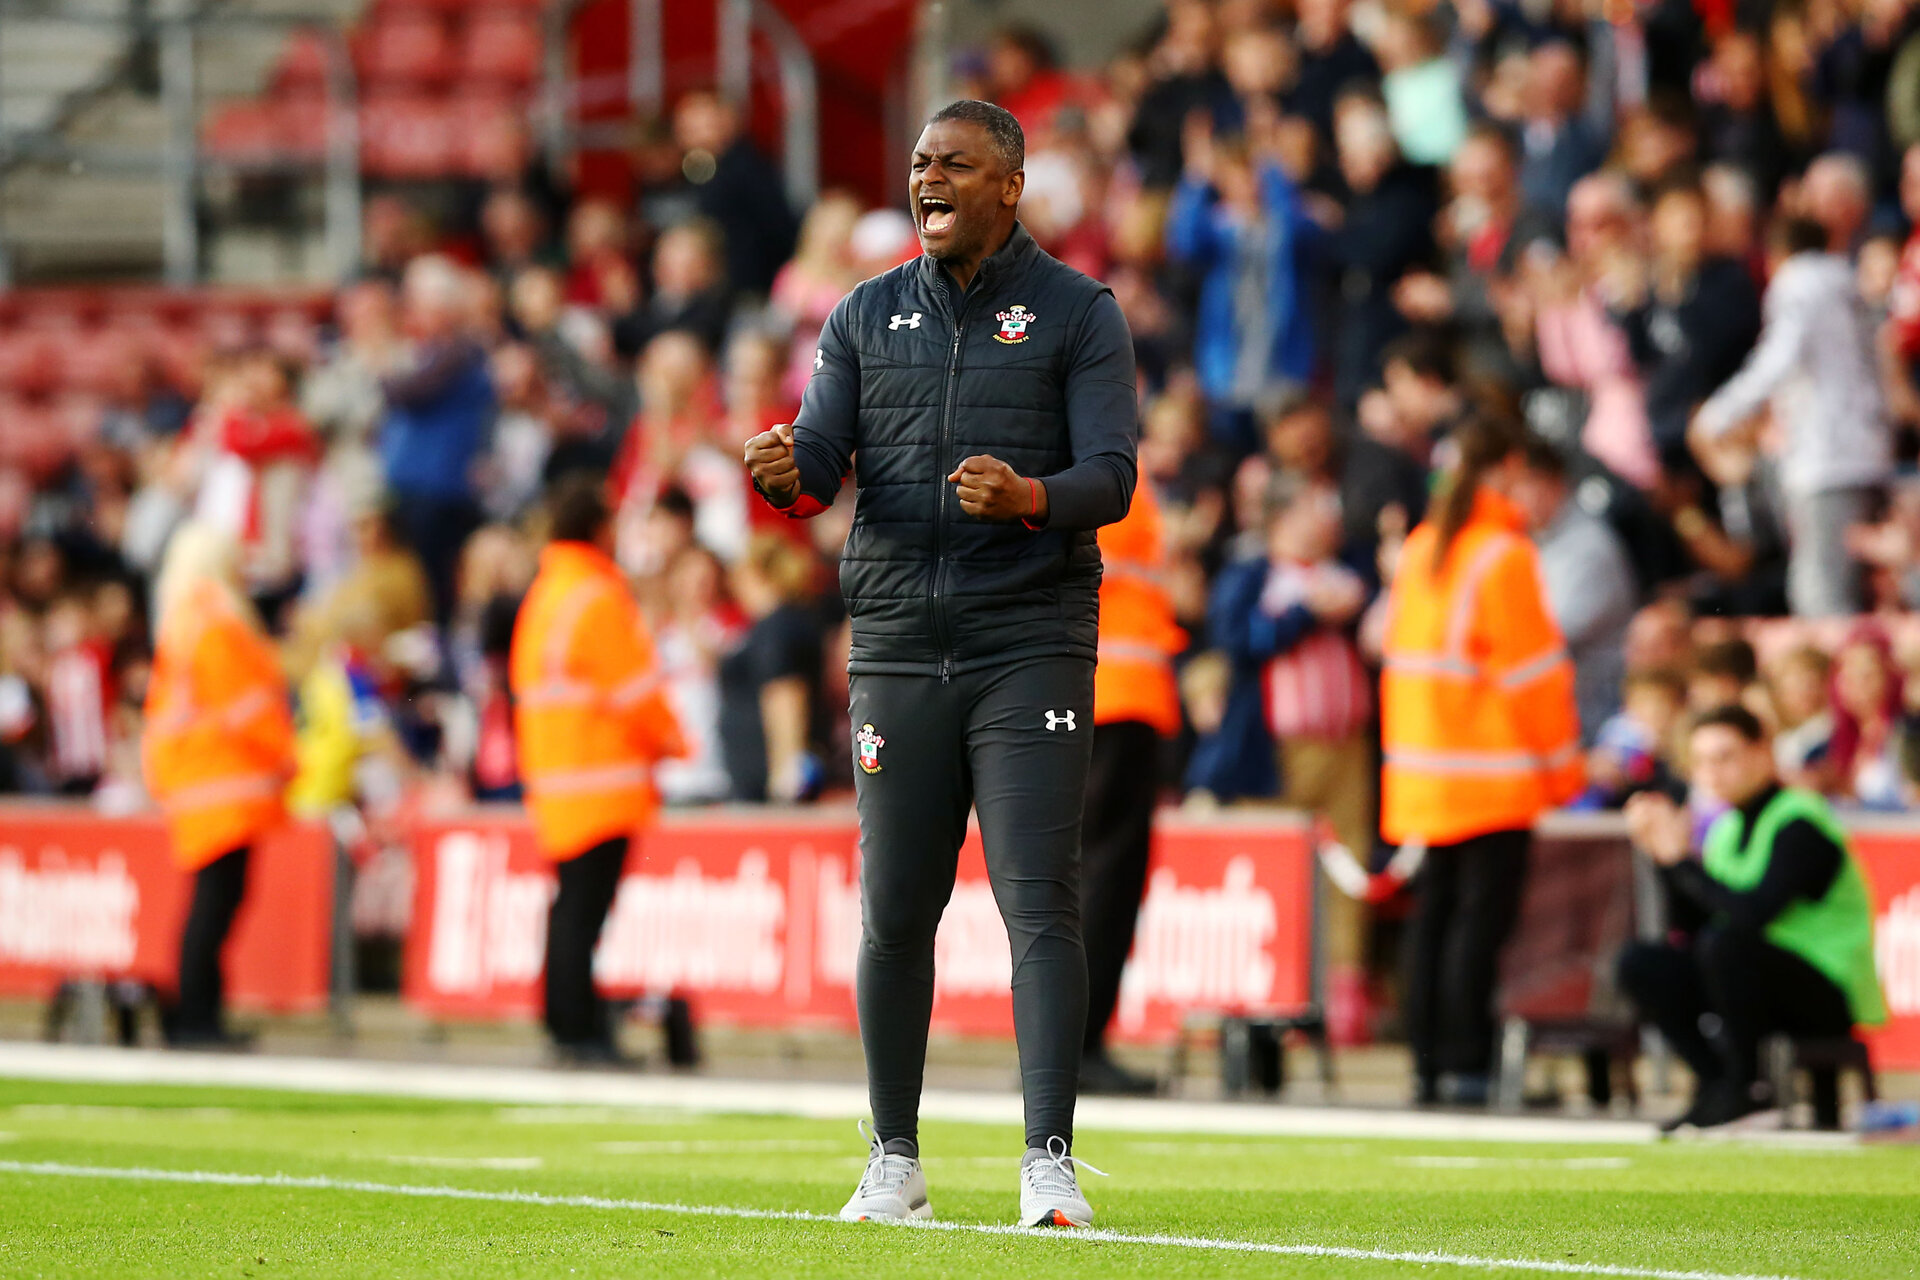 SOUTHAMPTON, ENGLAND - MAY 13: Radhi Jaidi celebrates as Southampton FC score their second goal during the U23s PL2 Play off final between Southampton and Newcastle United pictured at St. Mary's Stadium on May 13, 2019 in Southampton, England. (Photo by James Bridle - Southampton FC/Southampton FC via Getty Images)